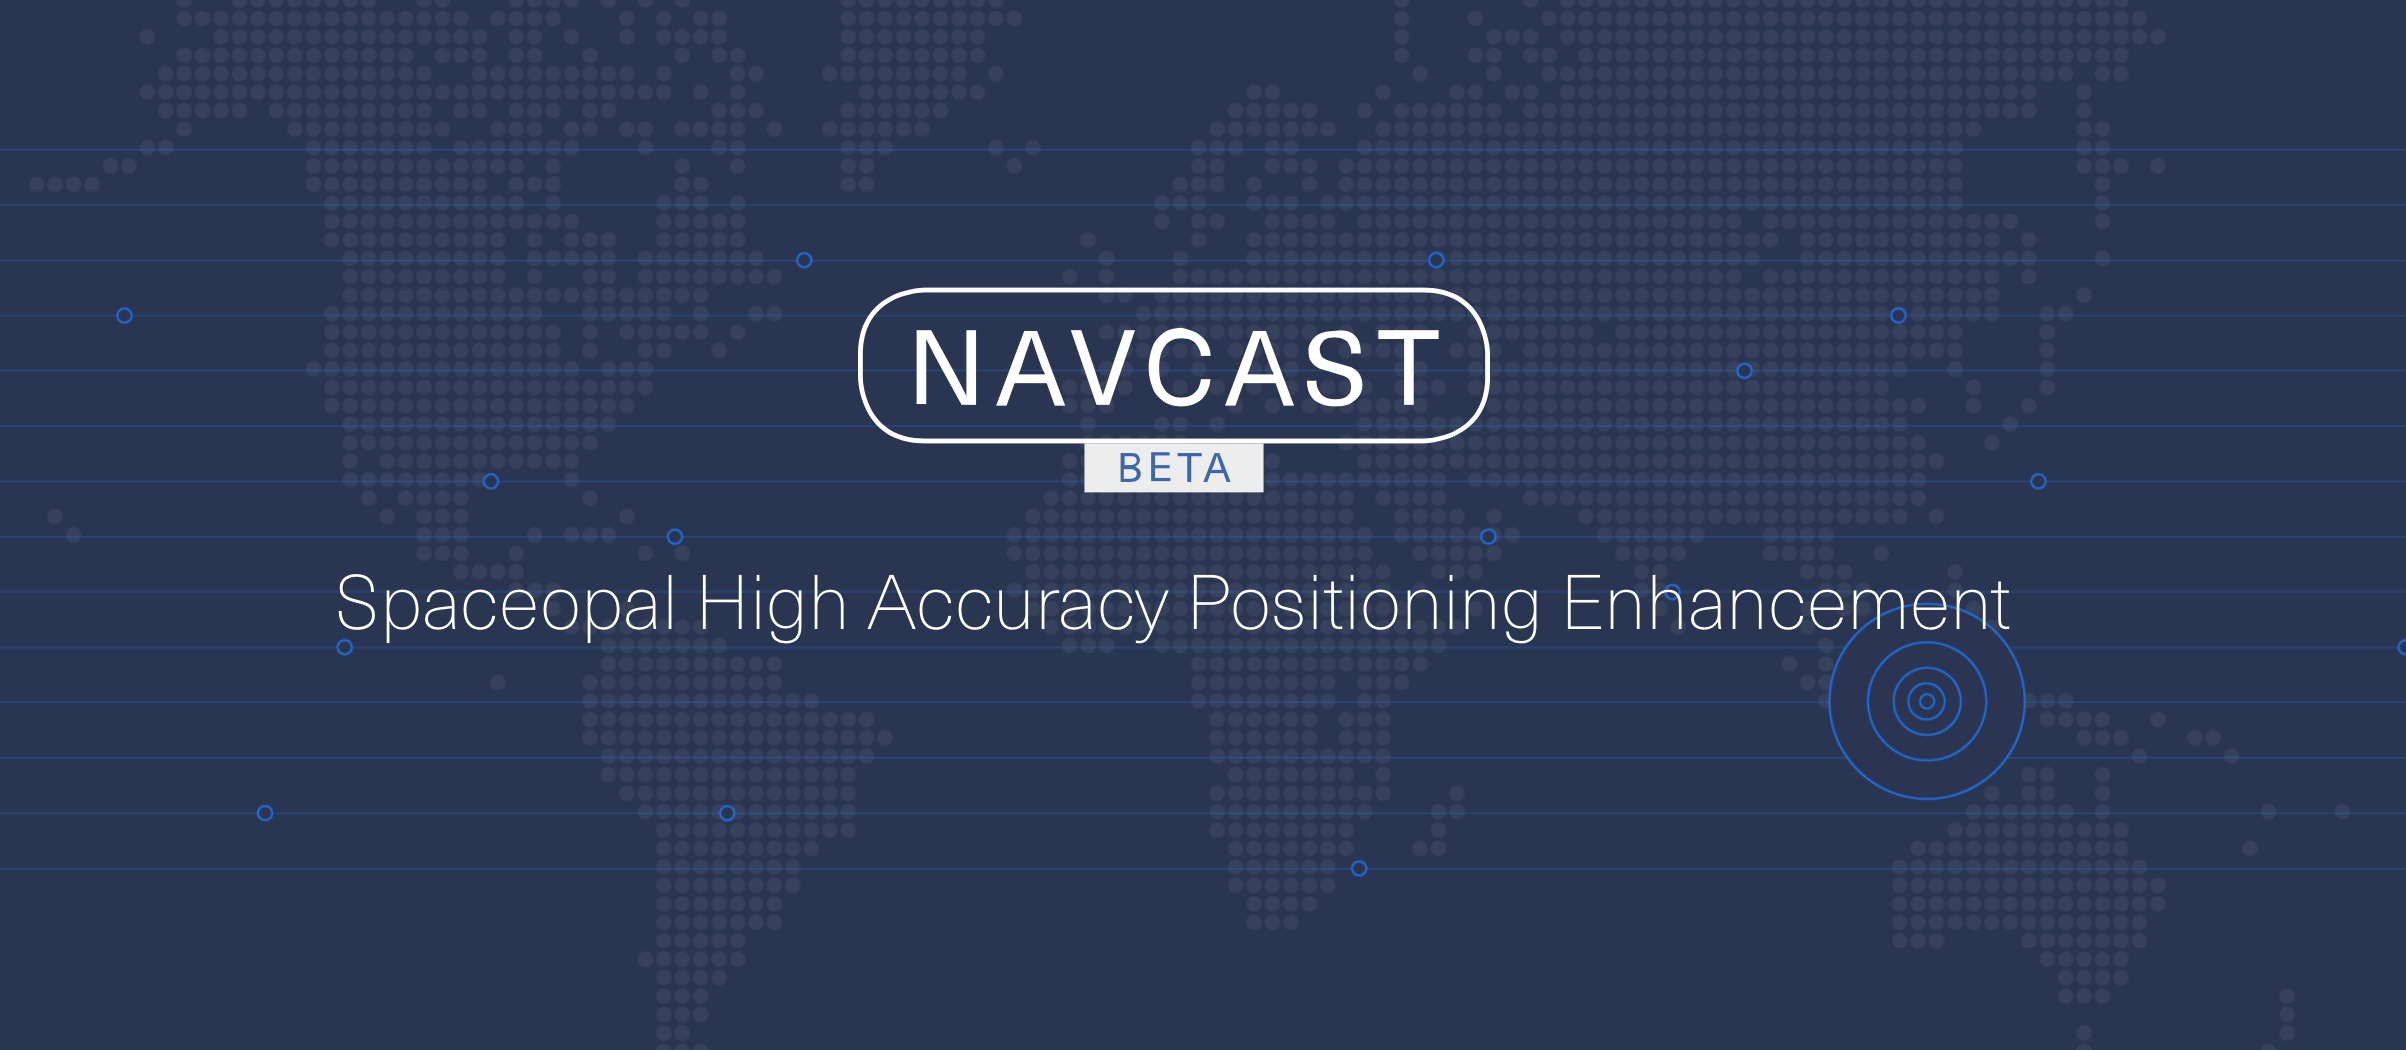 Spaceopal Launches NAVCAST Precise Point Positioning Service